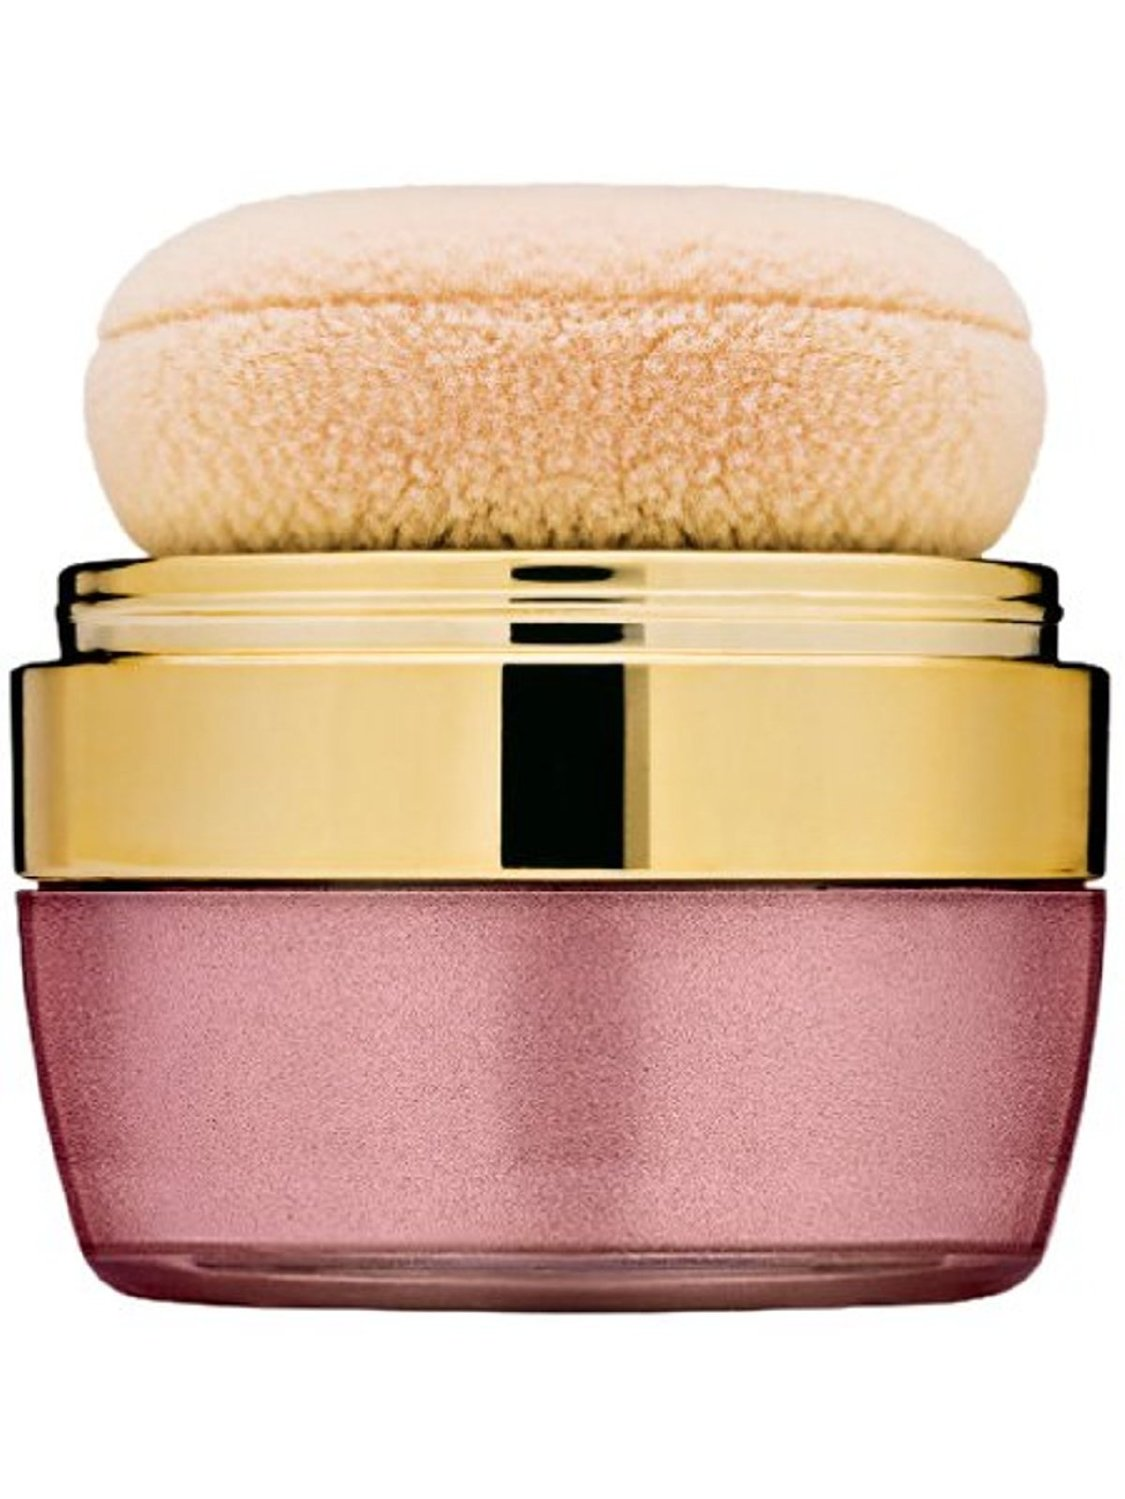 Lakme Face Sheer Highlighter Desert Rose